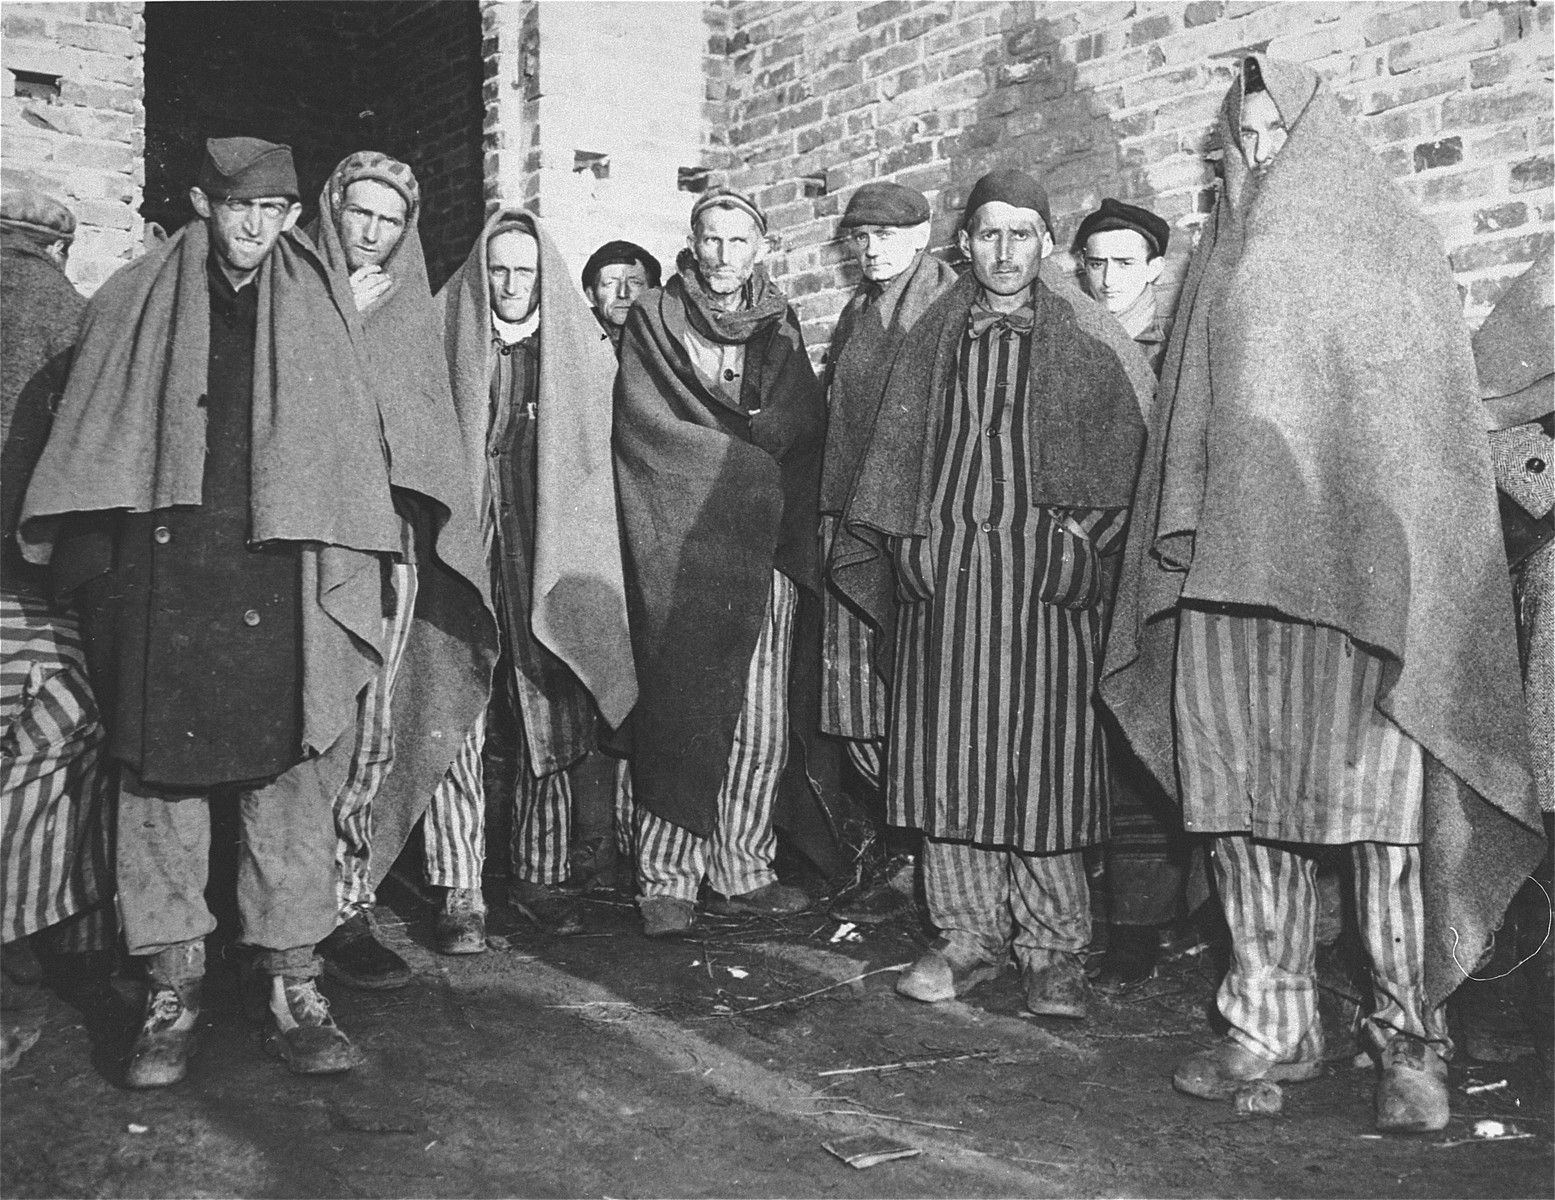 Survivors in Woebbelin on the day of liberation.